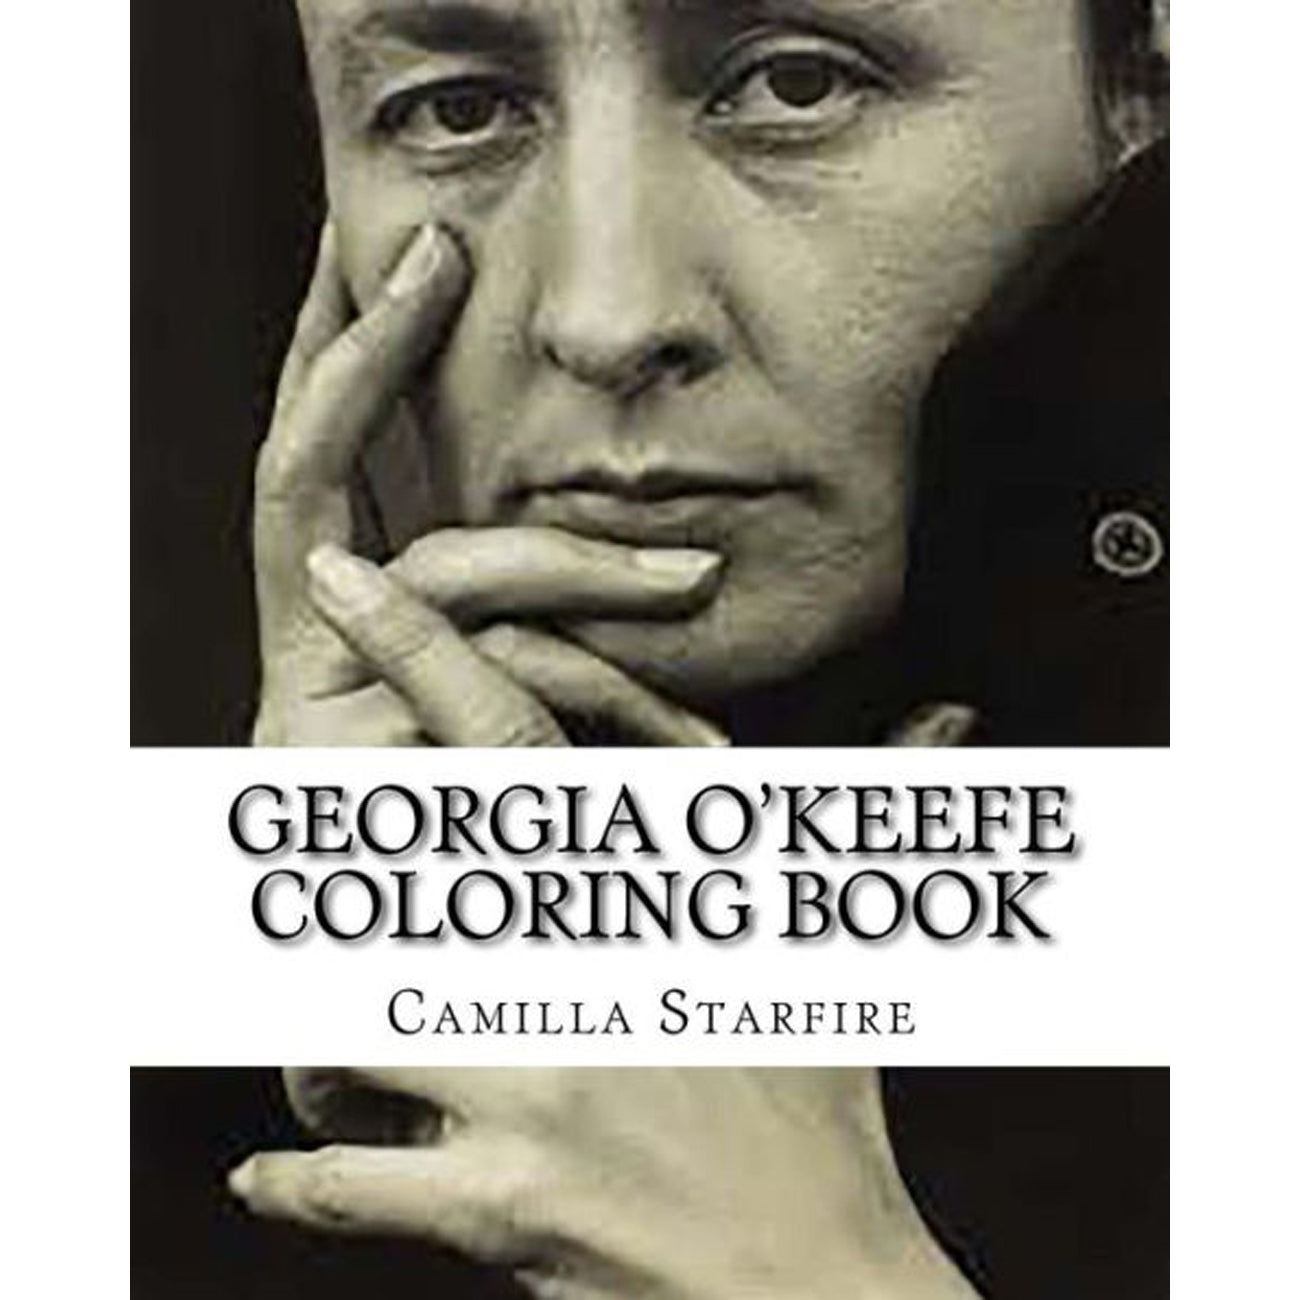 Georgia O'Keefe Coloring Book